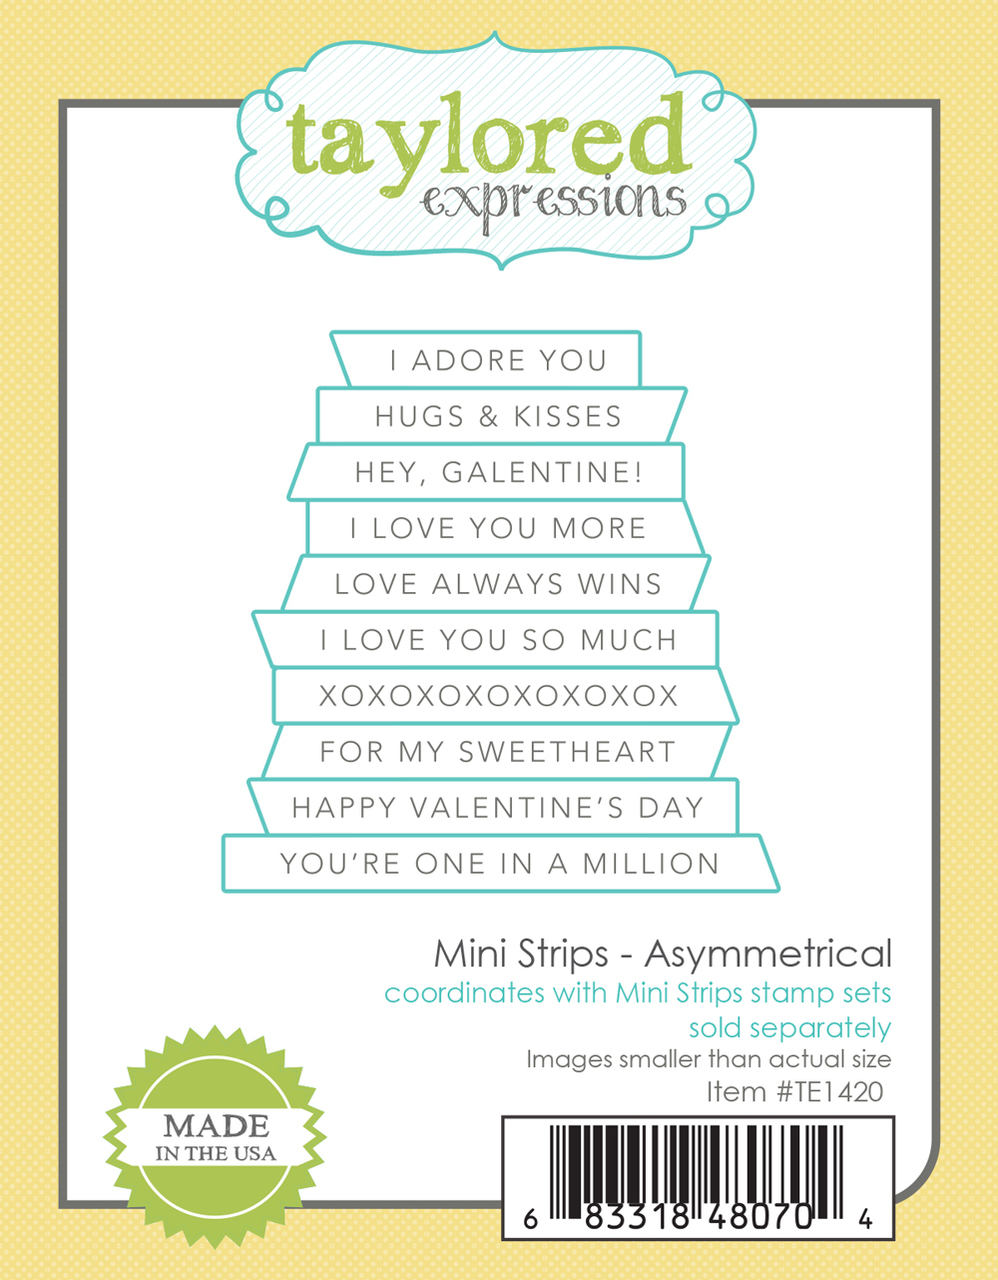 Taylored Expression - Mini Strips - Asymmetrical Die